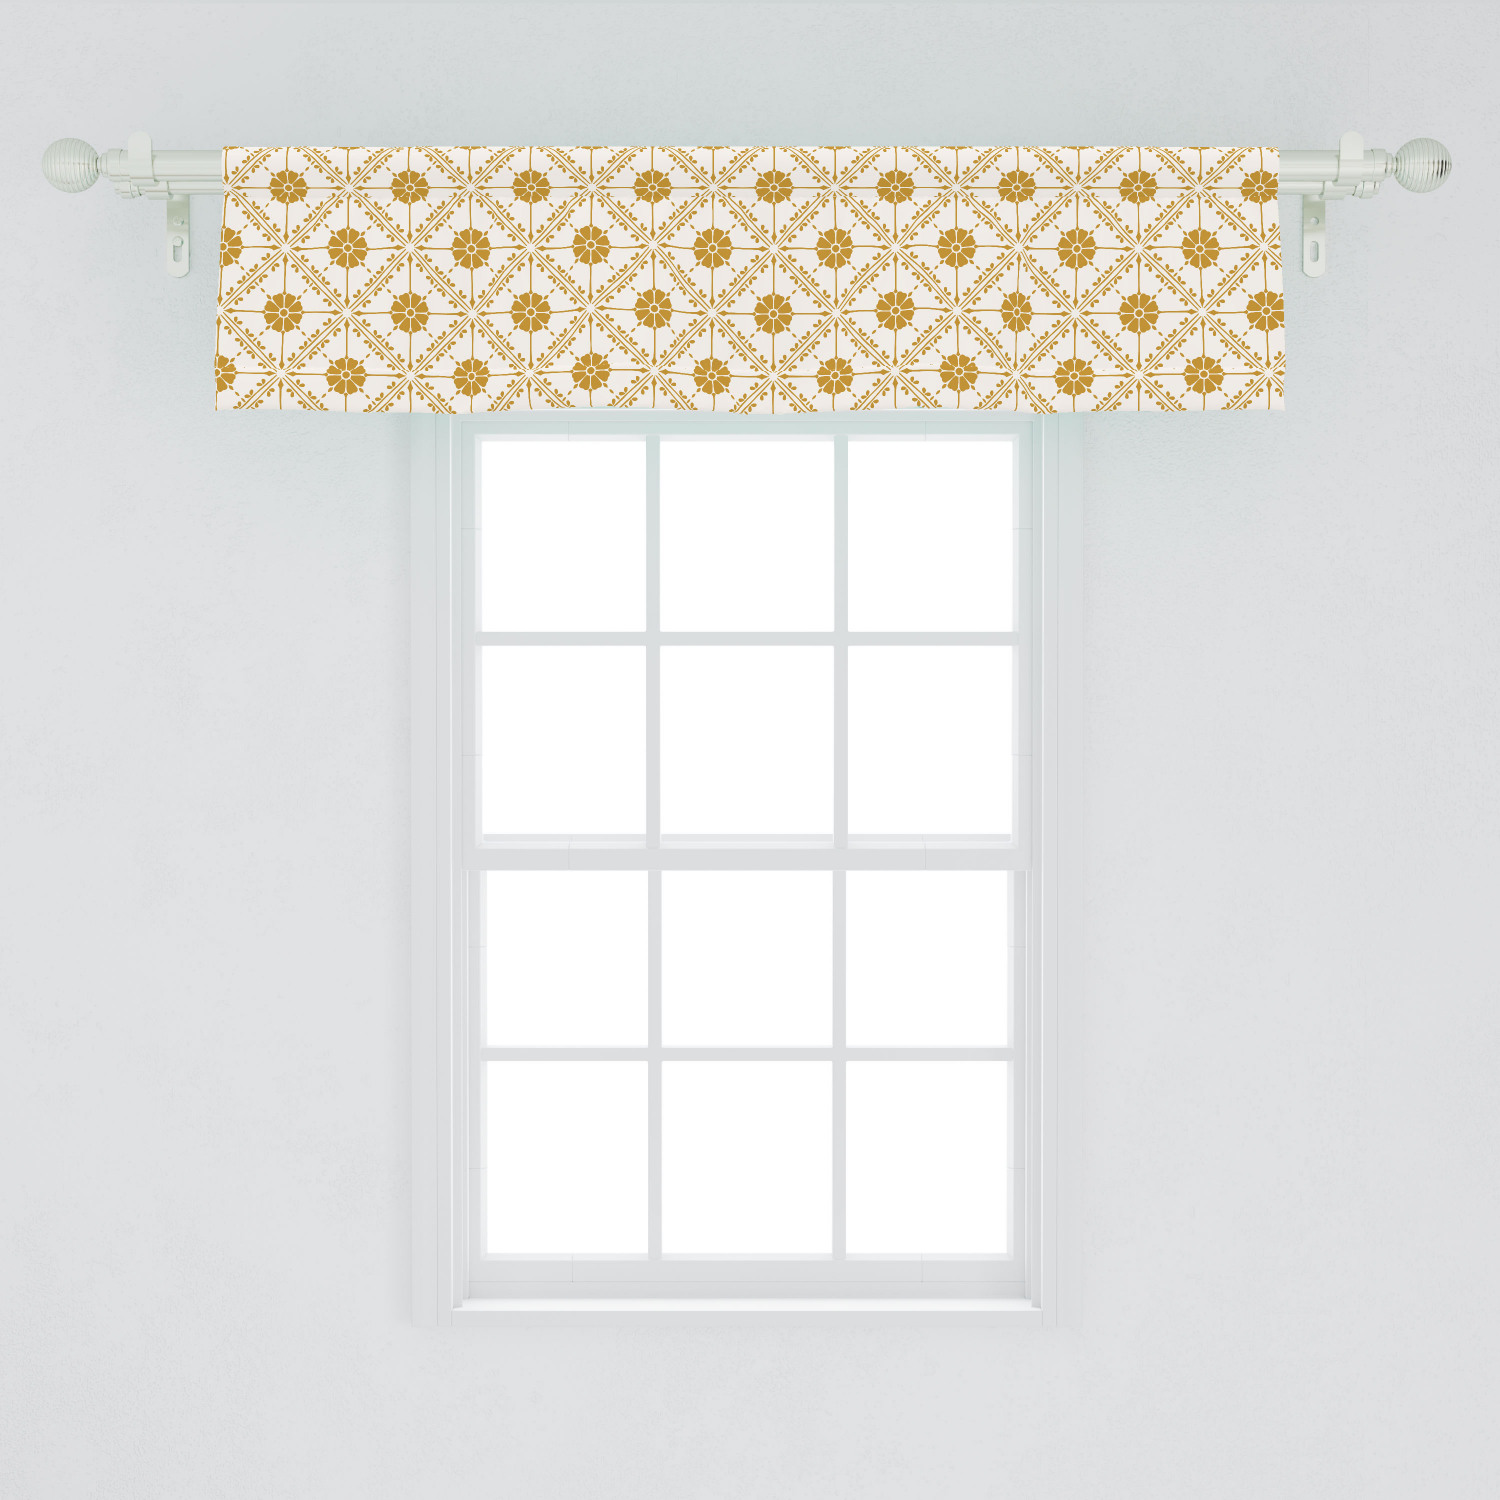 Boho Window Valance Soft Toned Pattern With Flowers Details In Diagonal Squares Curtain Valance For Kitchen Bedroom Decor With Rod Pocket By Ambesonne Walmart Com Walmart Com